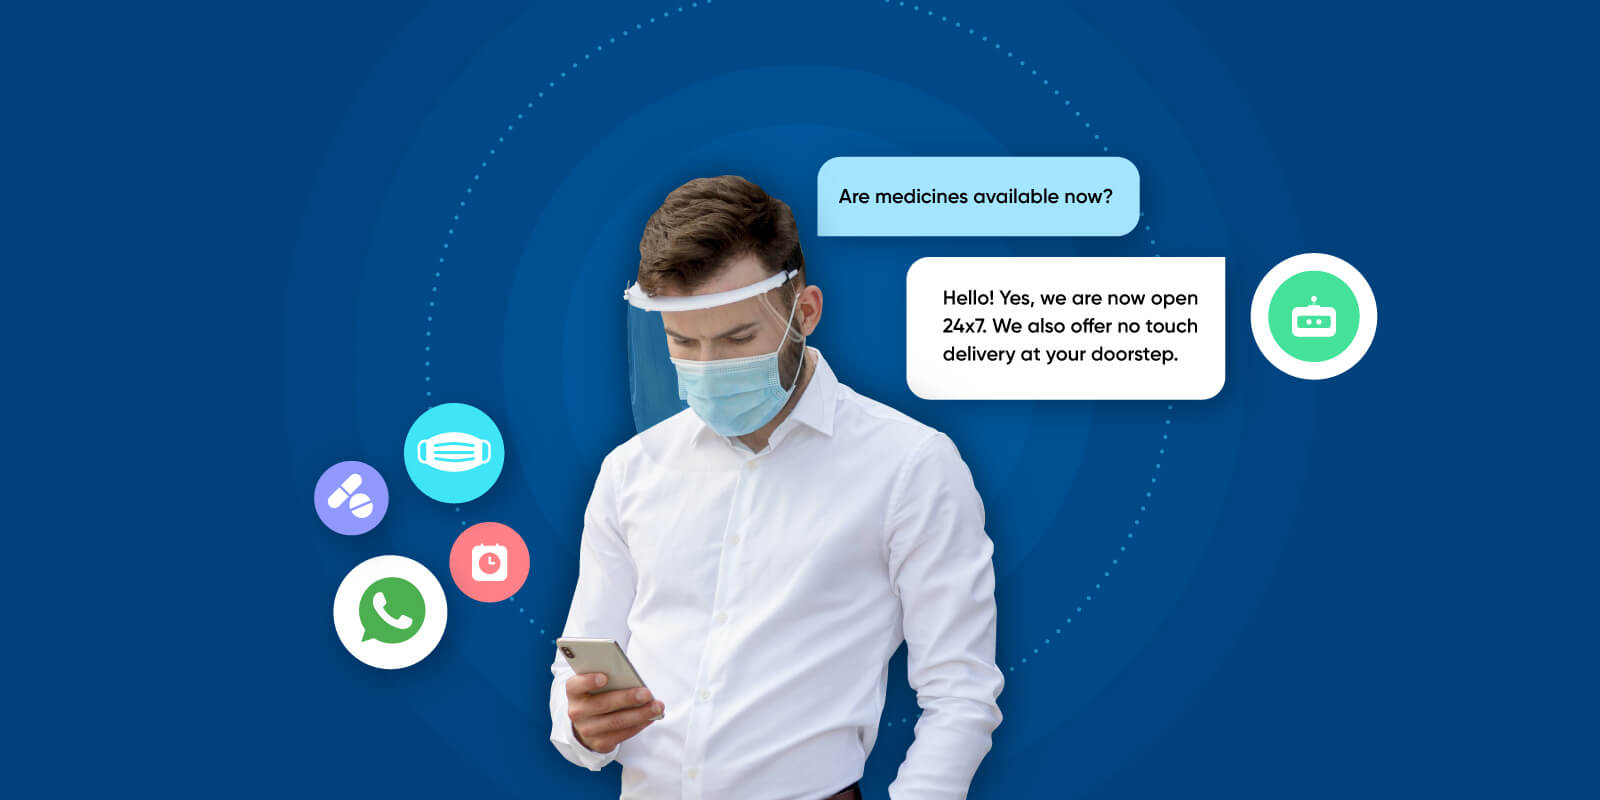 conversational AI is helping connect people during pandemic